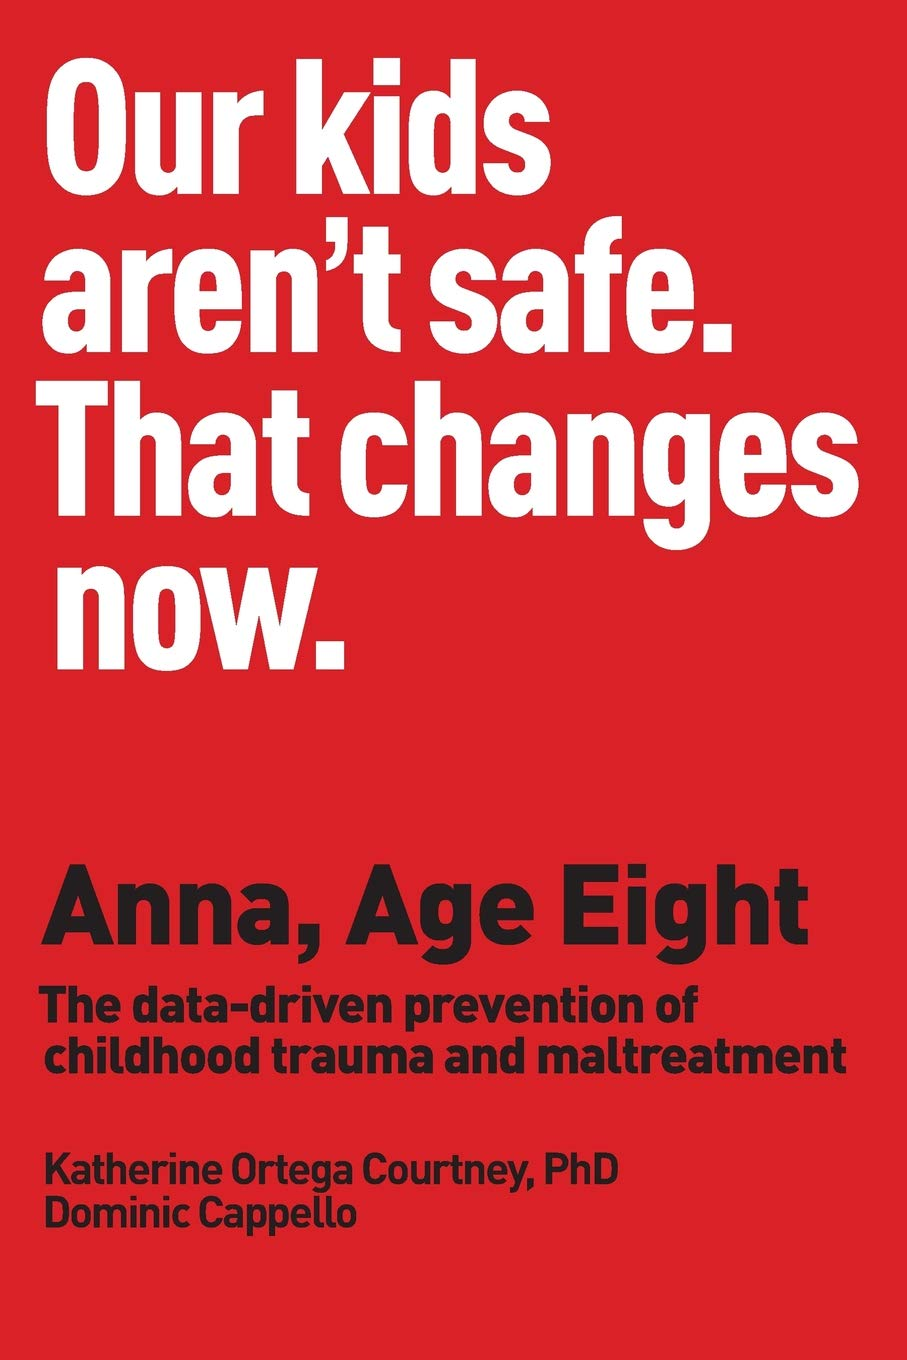 In Us 1 In 8 Kids Maltreated By Age 18 >> Anna Age Eight The Data Driven Prevention Of Childhood